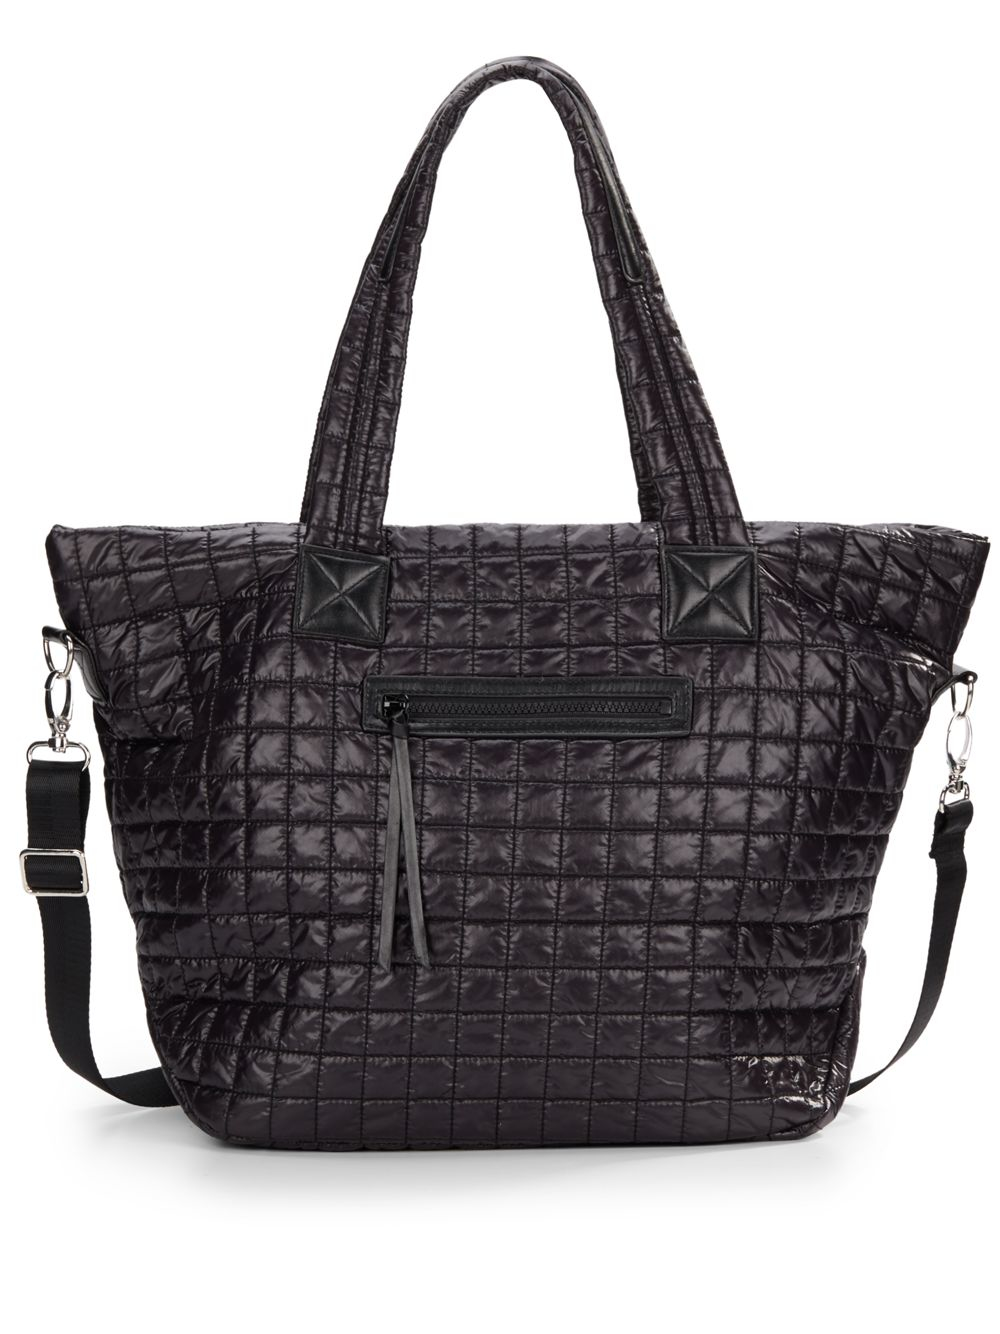 ea0503c90e51 Saks fifth avenue Quilted Nylon Tote in Black | Lyst Prada Bags: ...